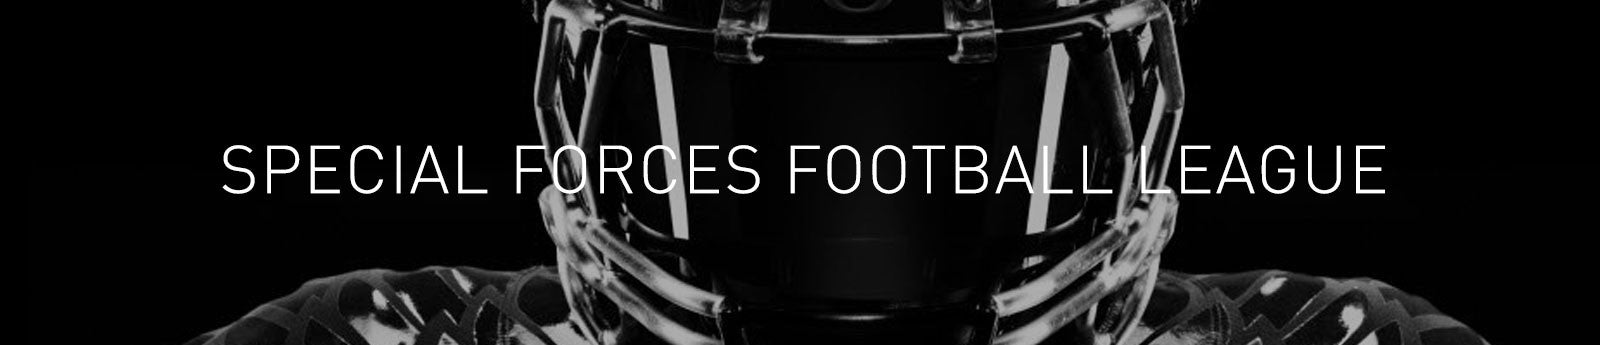 Special Forces Football League